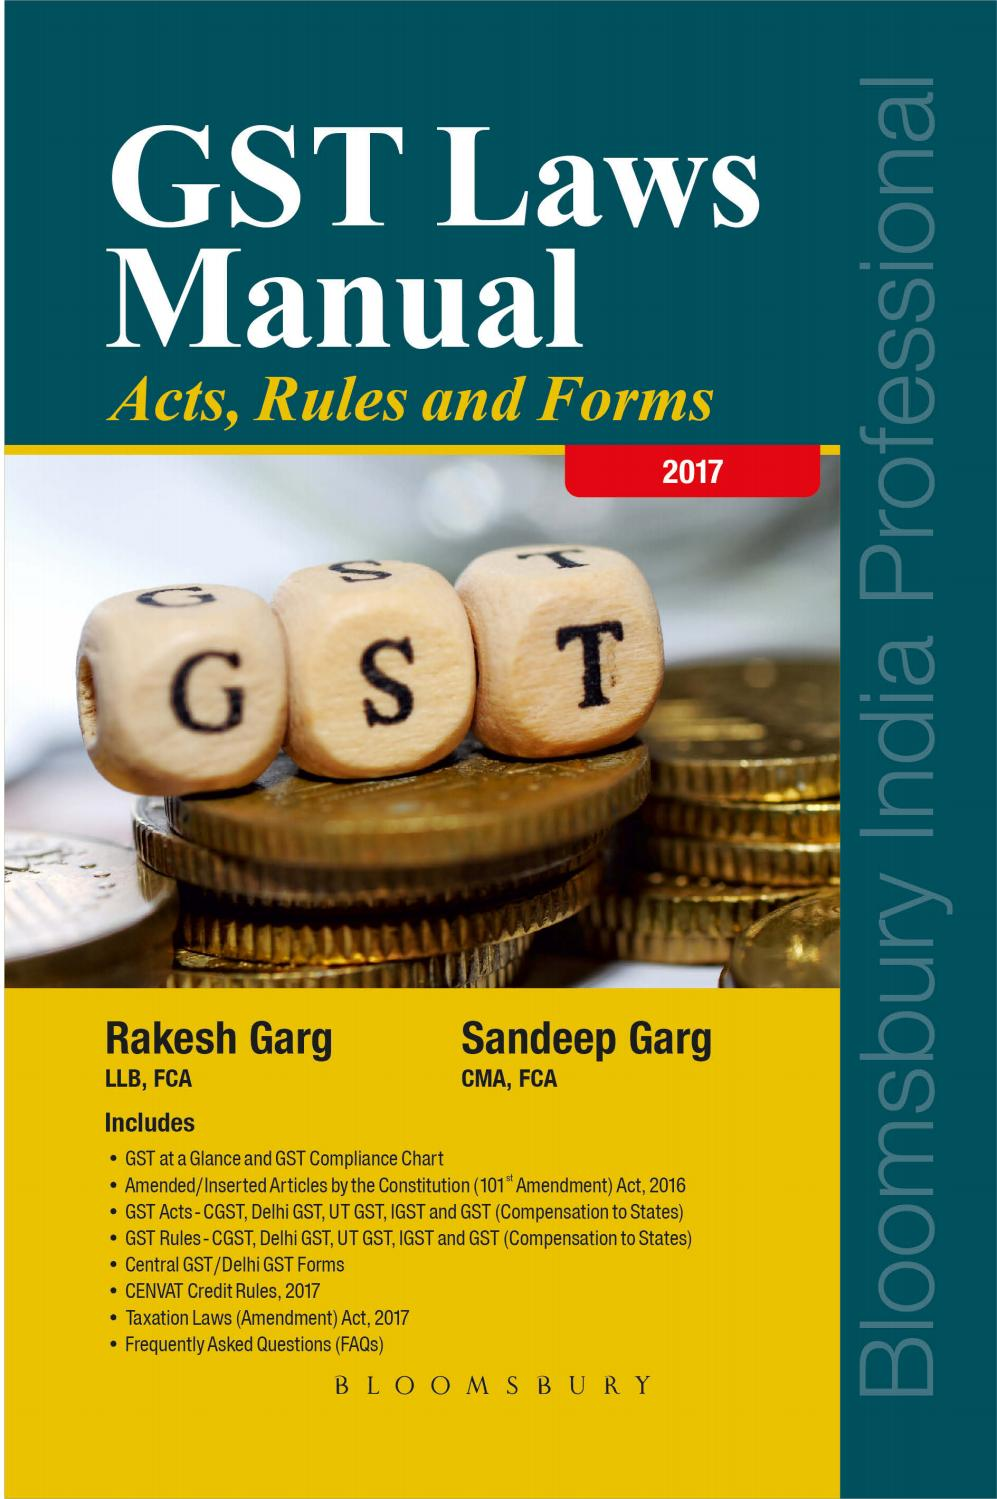 GST Laws Manual – Acts, Rules and Forms by Bloomsbury India